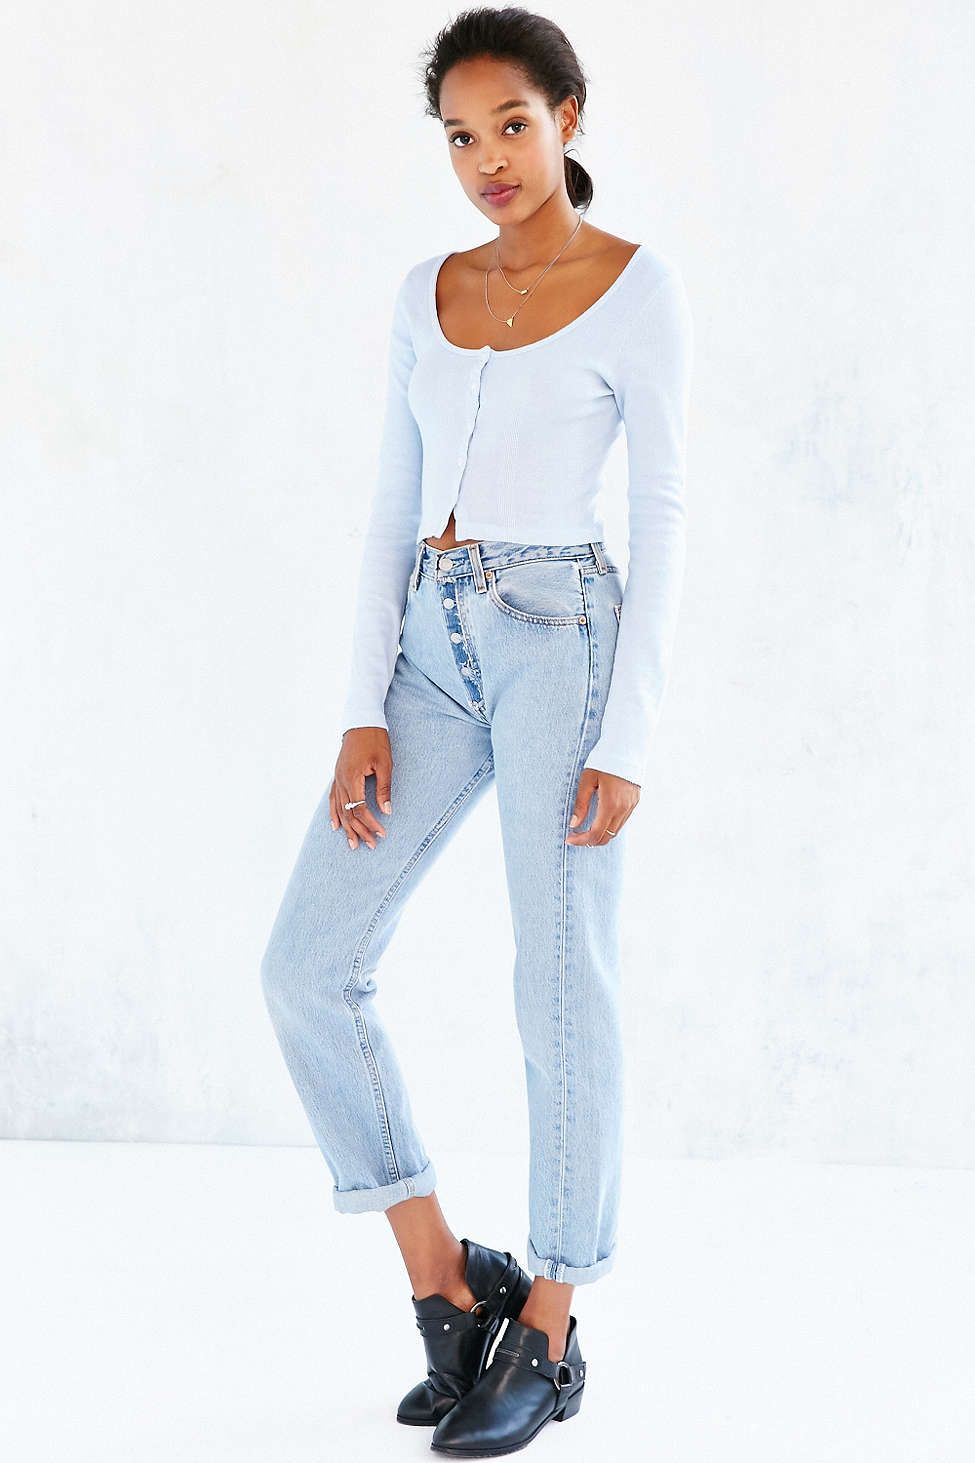 Truly Madly Deeply Clarissa Cropped Long-Sleeve Top - Urban Outfitters